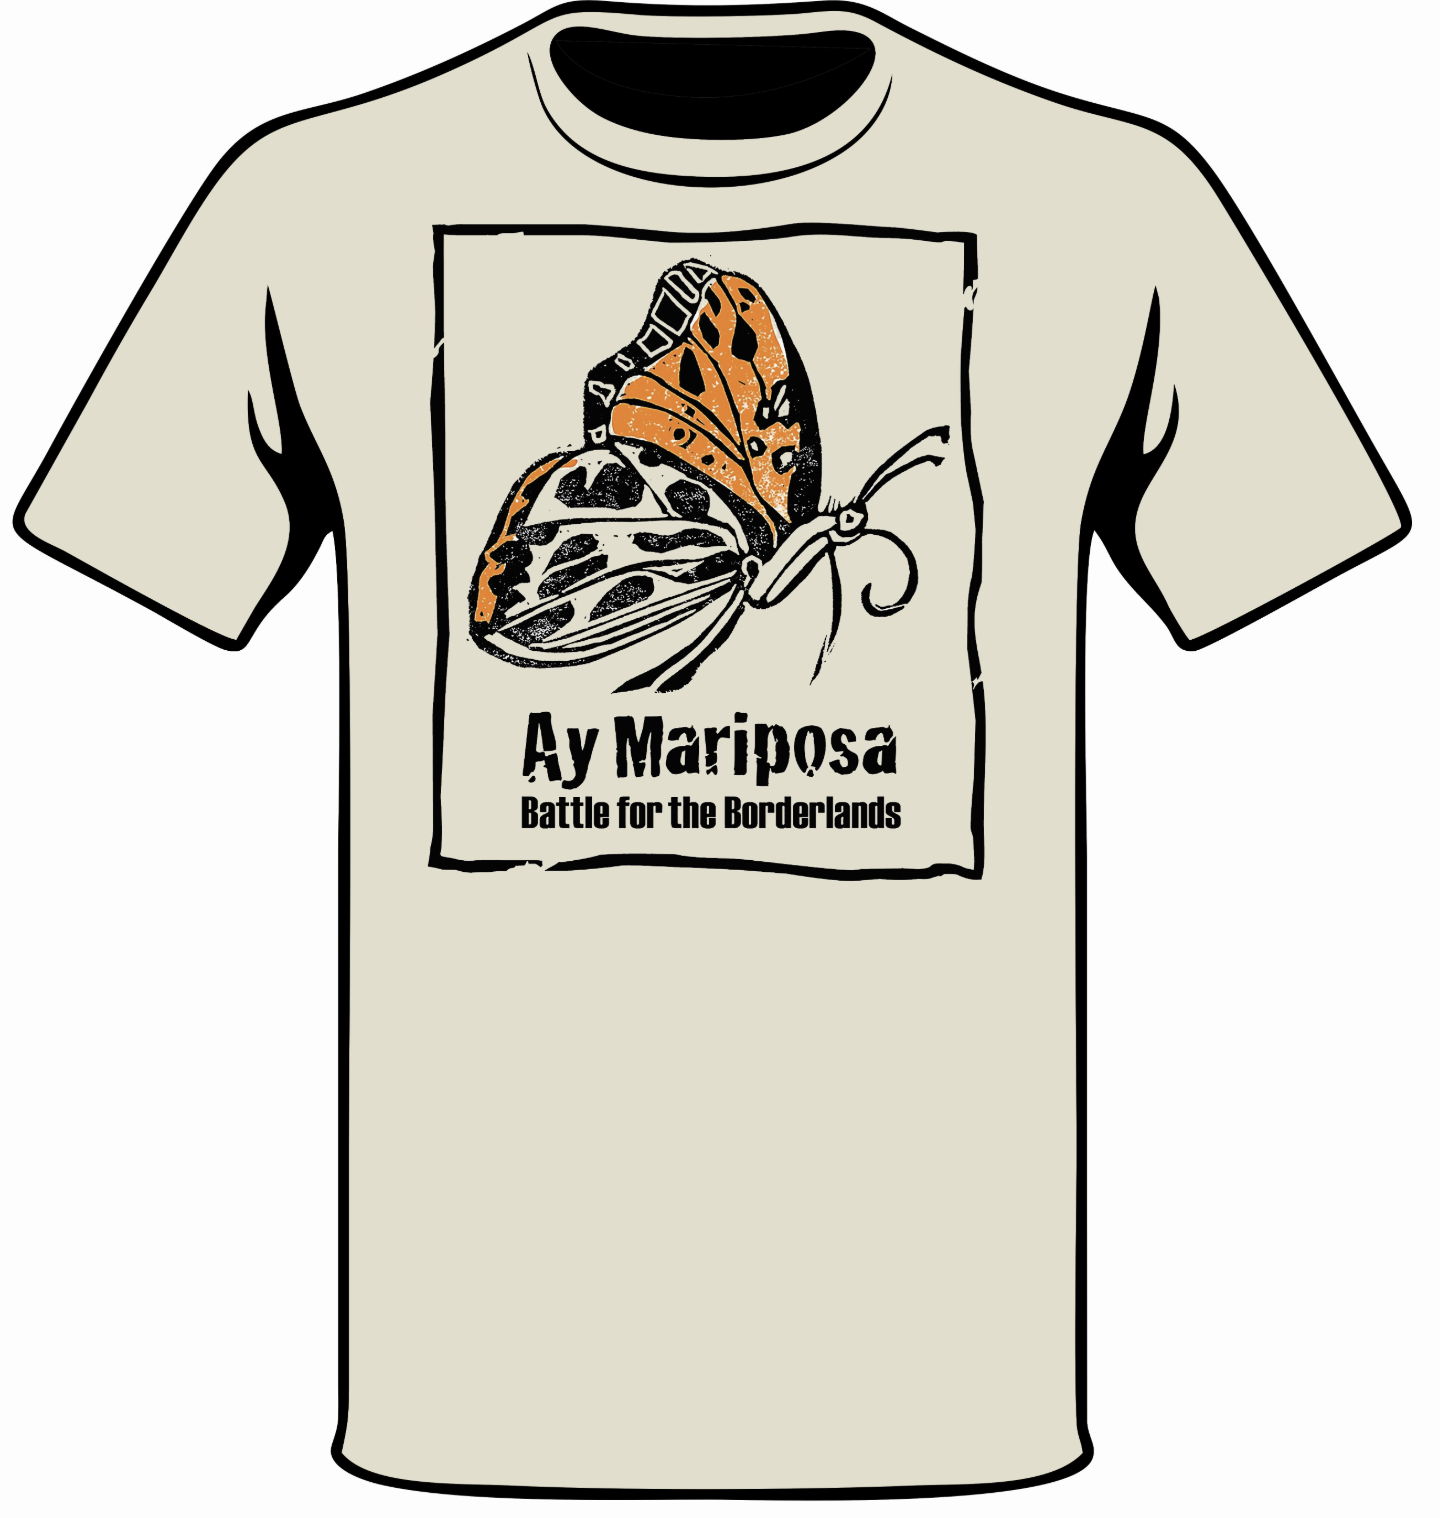 T-SHIRT   Half of the proceeds will go to the National Butterfly Center.  $20-$25